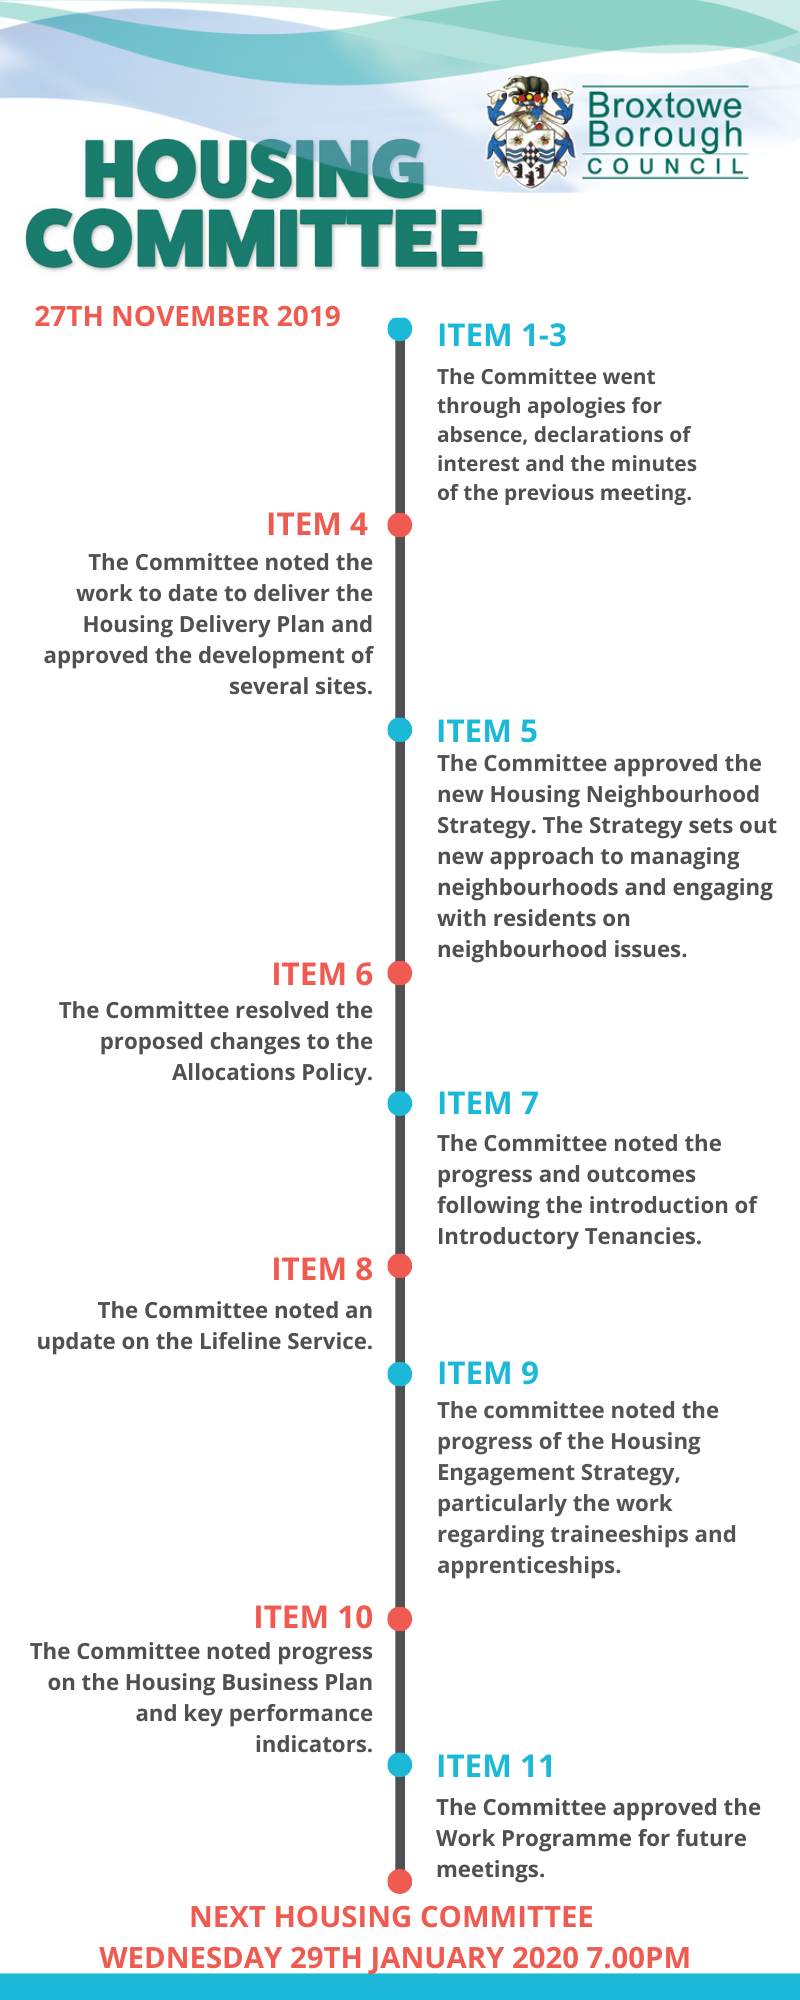 infographic sets out decisions made at the Housing Committee meeting on 27th November 2019. Click the graphic for more information